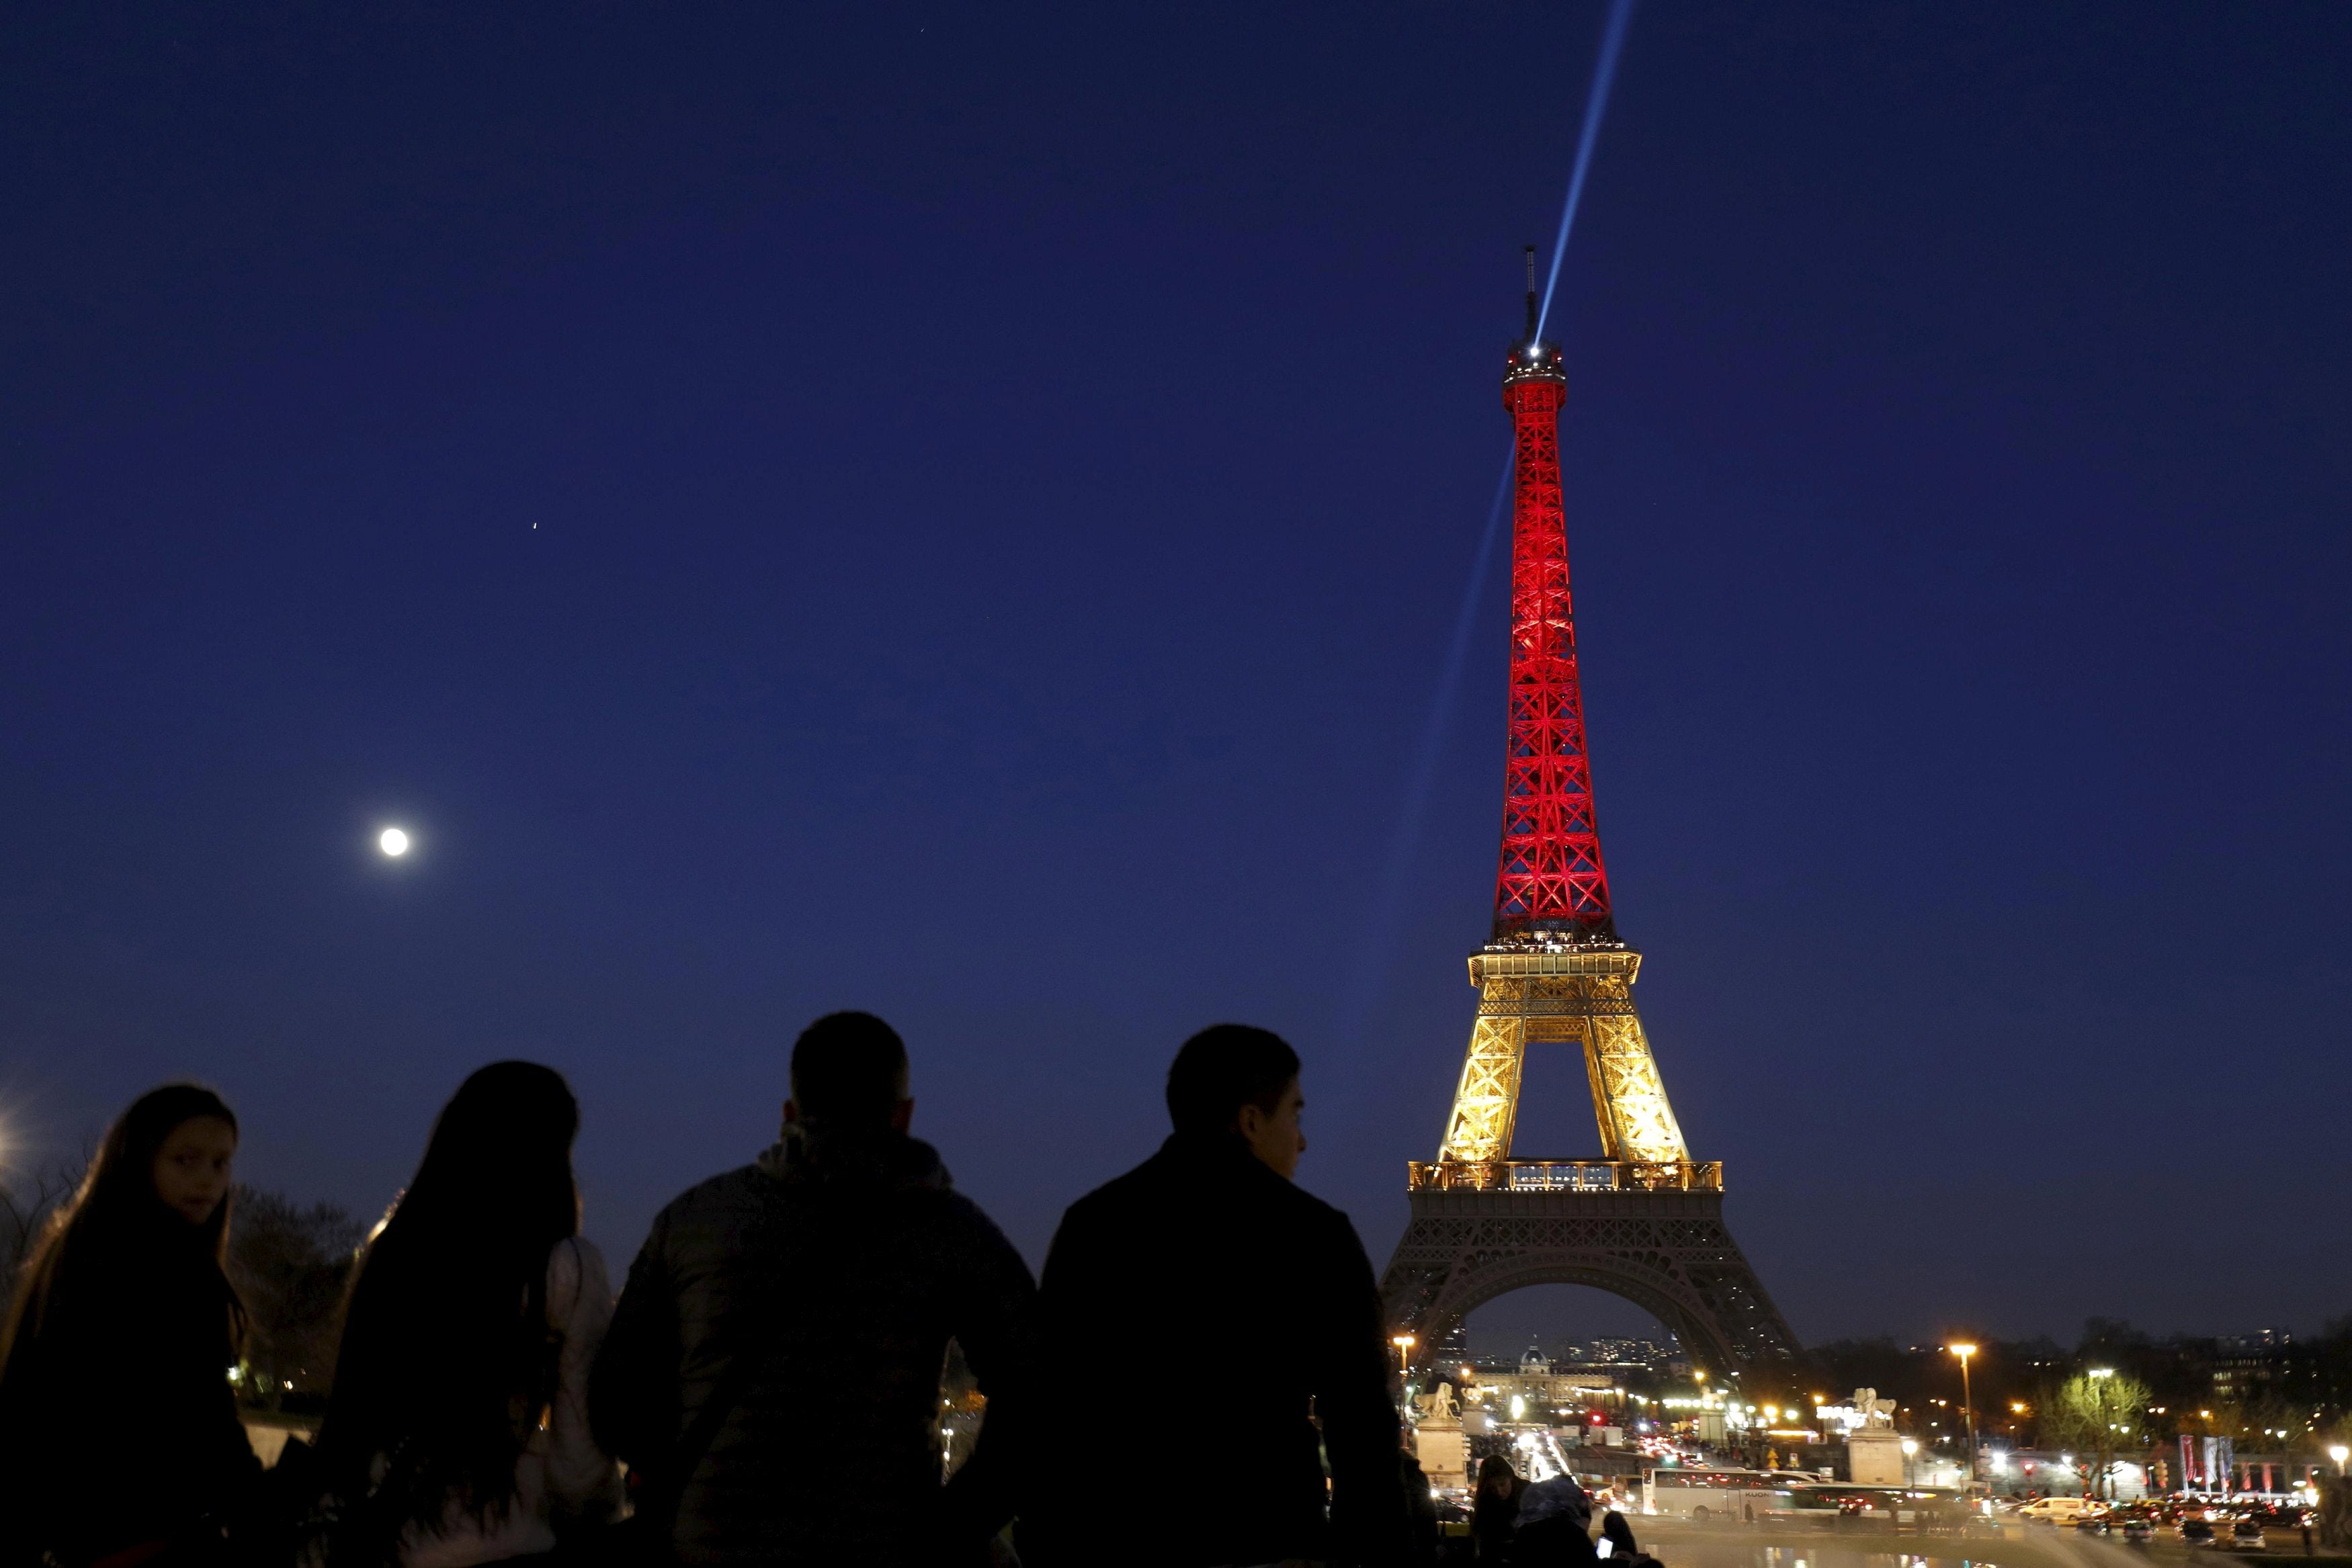 BELGIAN FLAG GALLERY The Eiffel Tower is seen with the black, yellow and red colours of the Belgian flag in tribute to the victims of today's Brussels bomb attacks, in Paris, France, March 22, 2016. REUTERS/Philippe Wojazer TPX IMAGES OF THE DAY